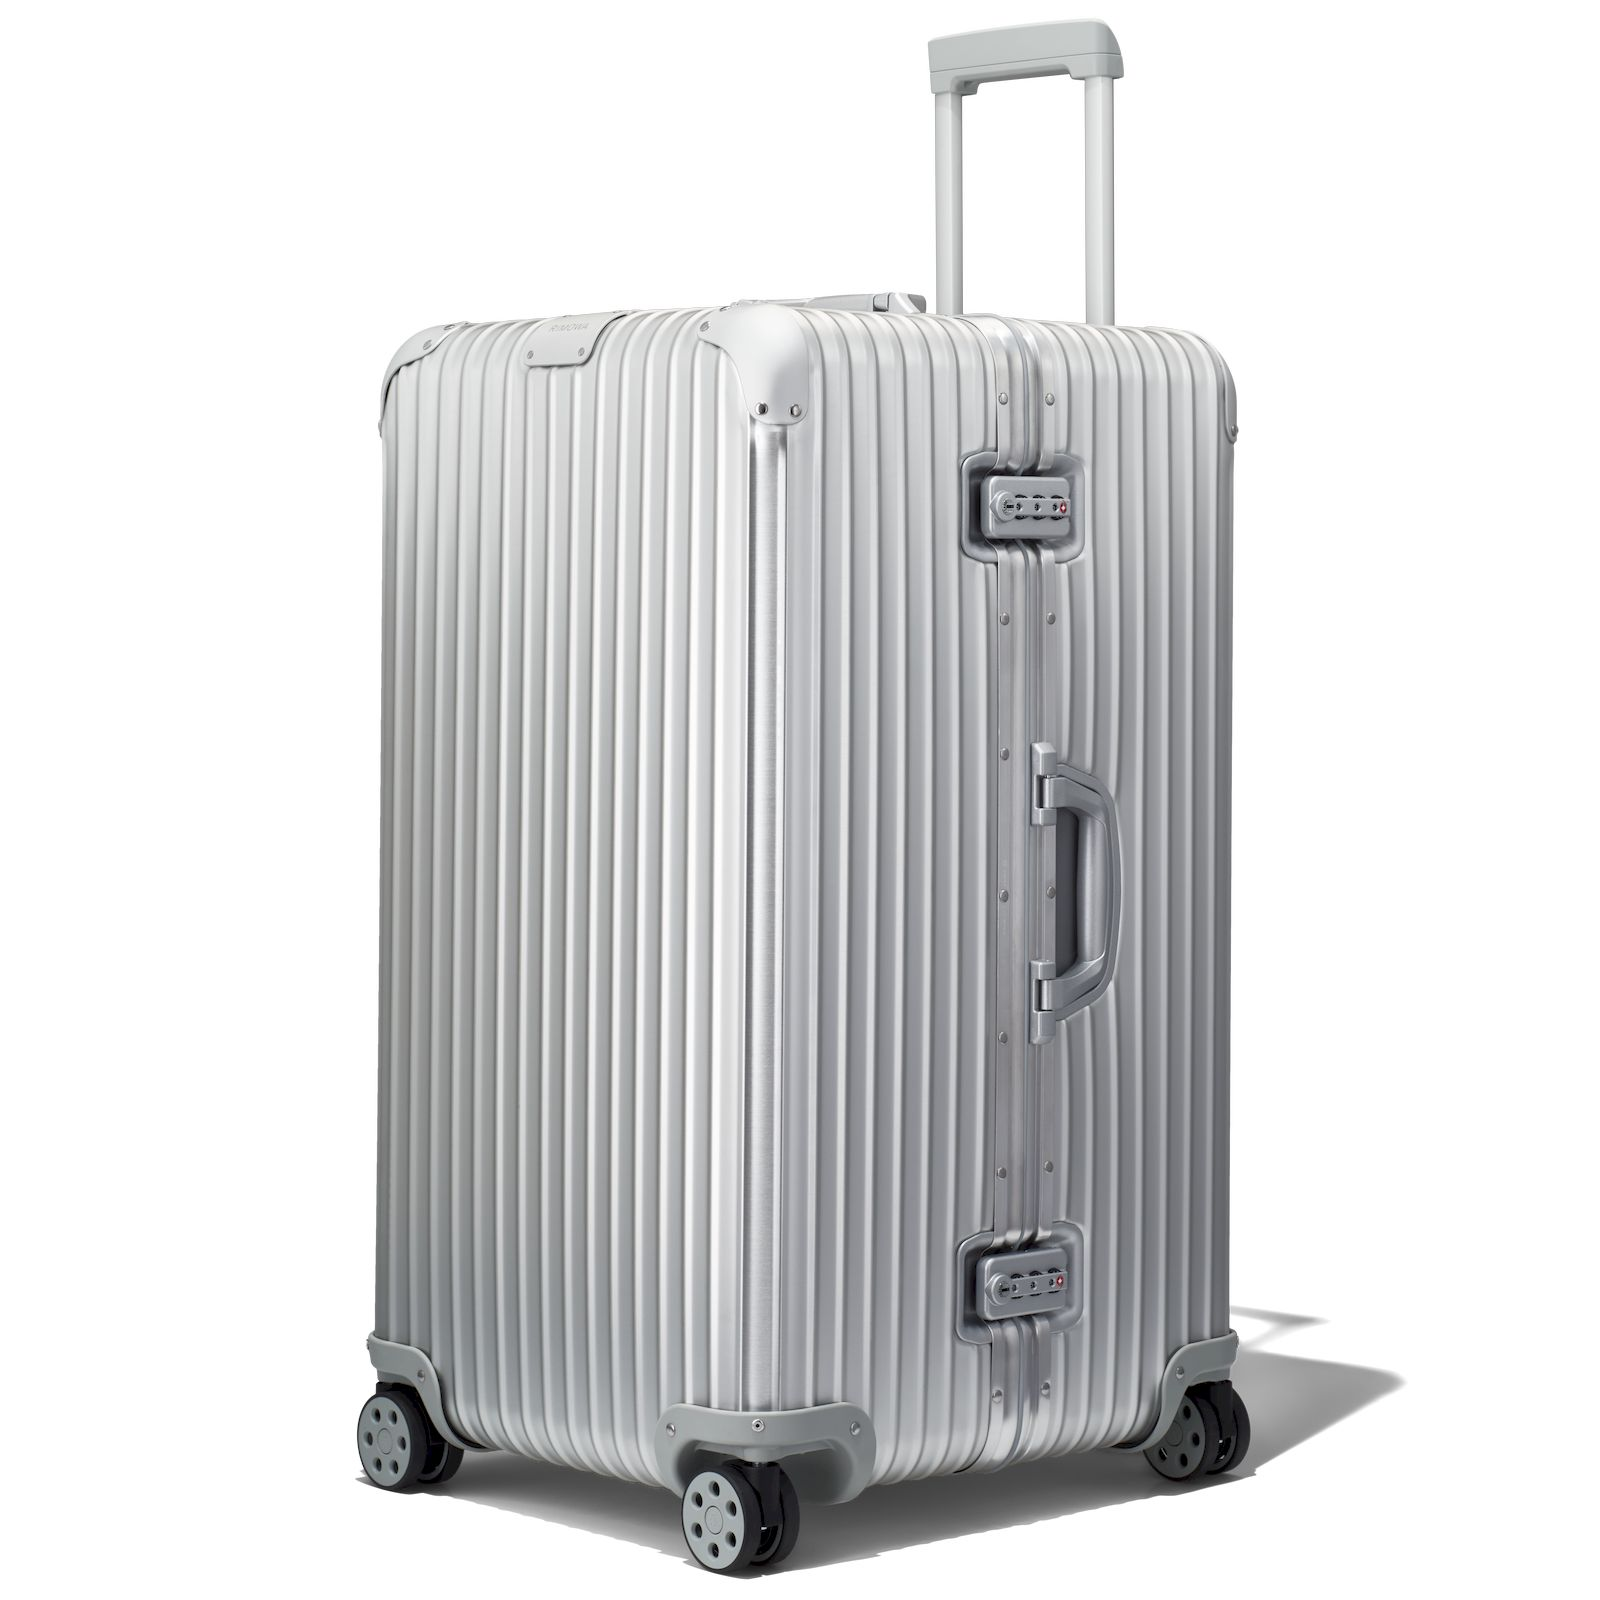 Epic voyages with Rimowa